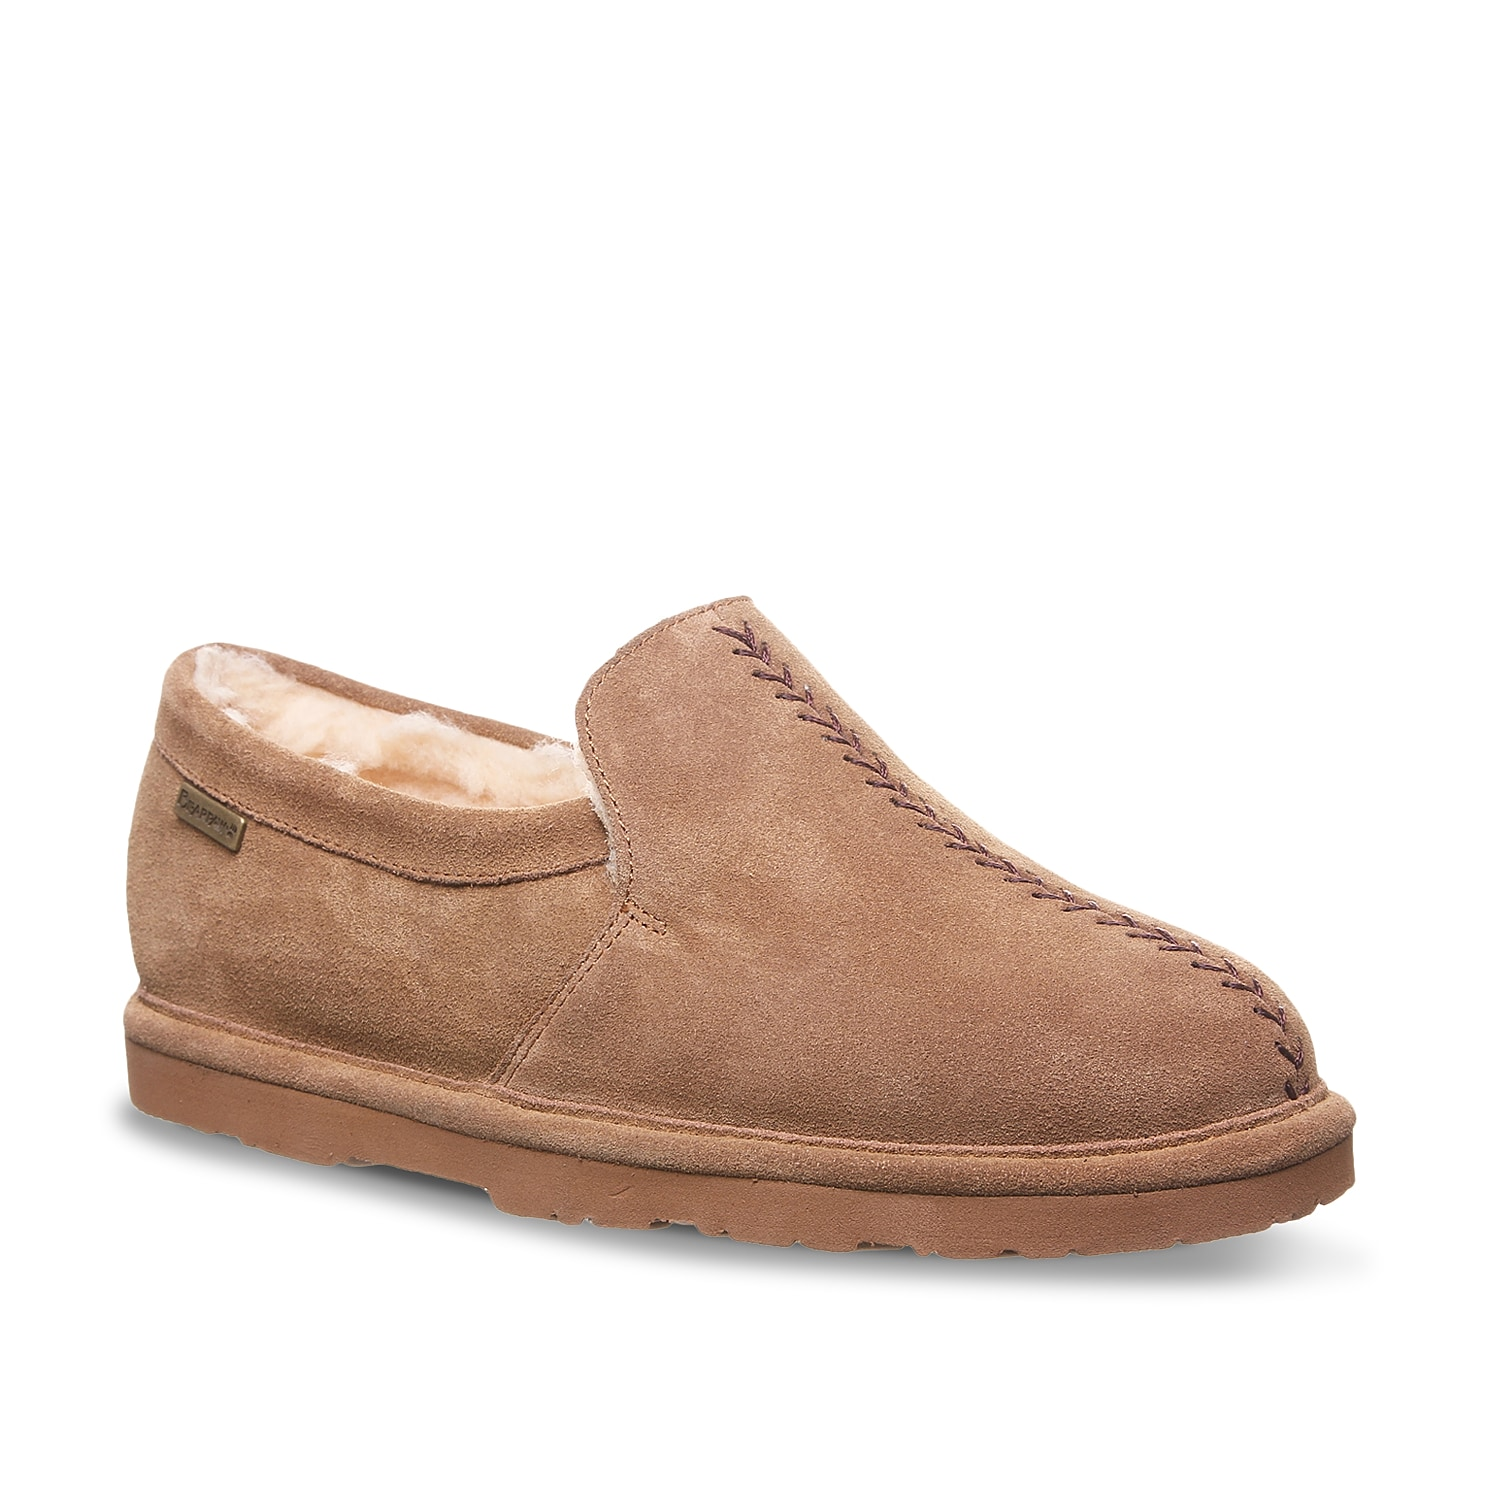 Kick back and relax when wearing the Jayden slippers from Bearpaw. This suede pair features a warm wool-blend lining and is topped off with NeverWet®technology to keep your feet dry.